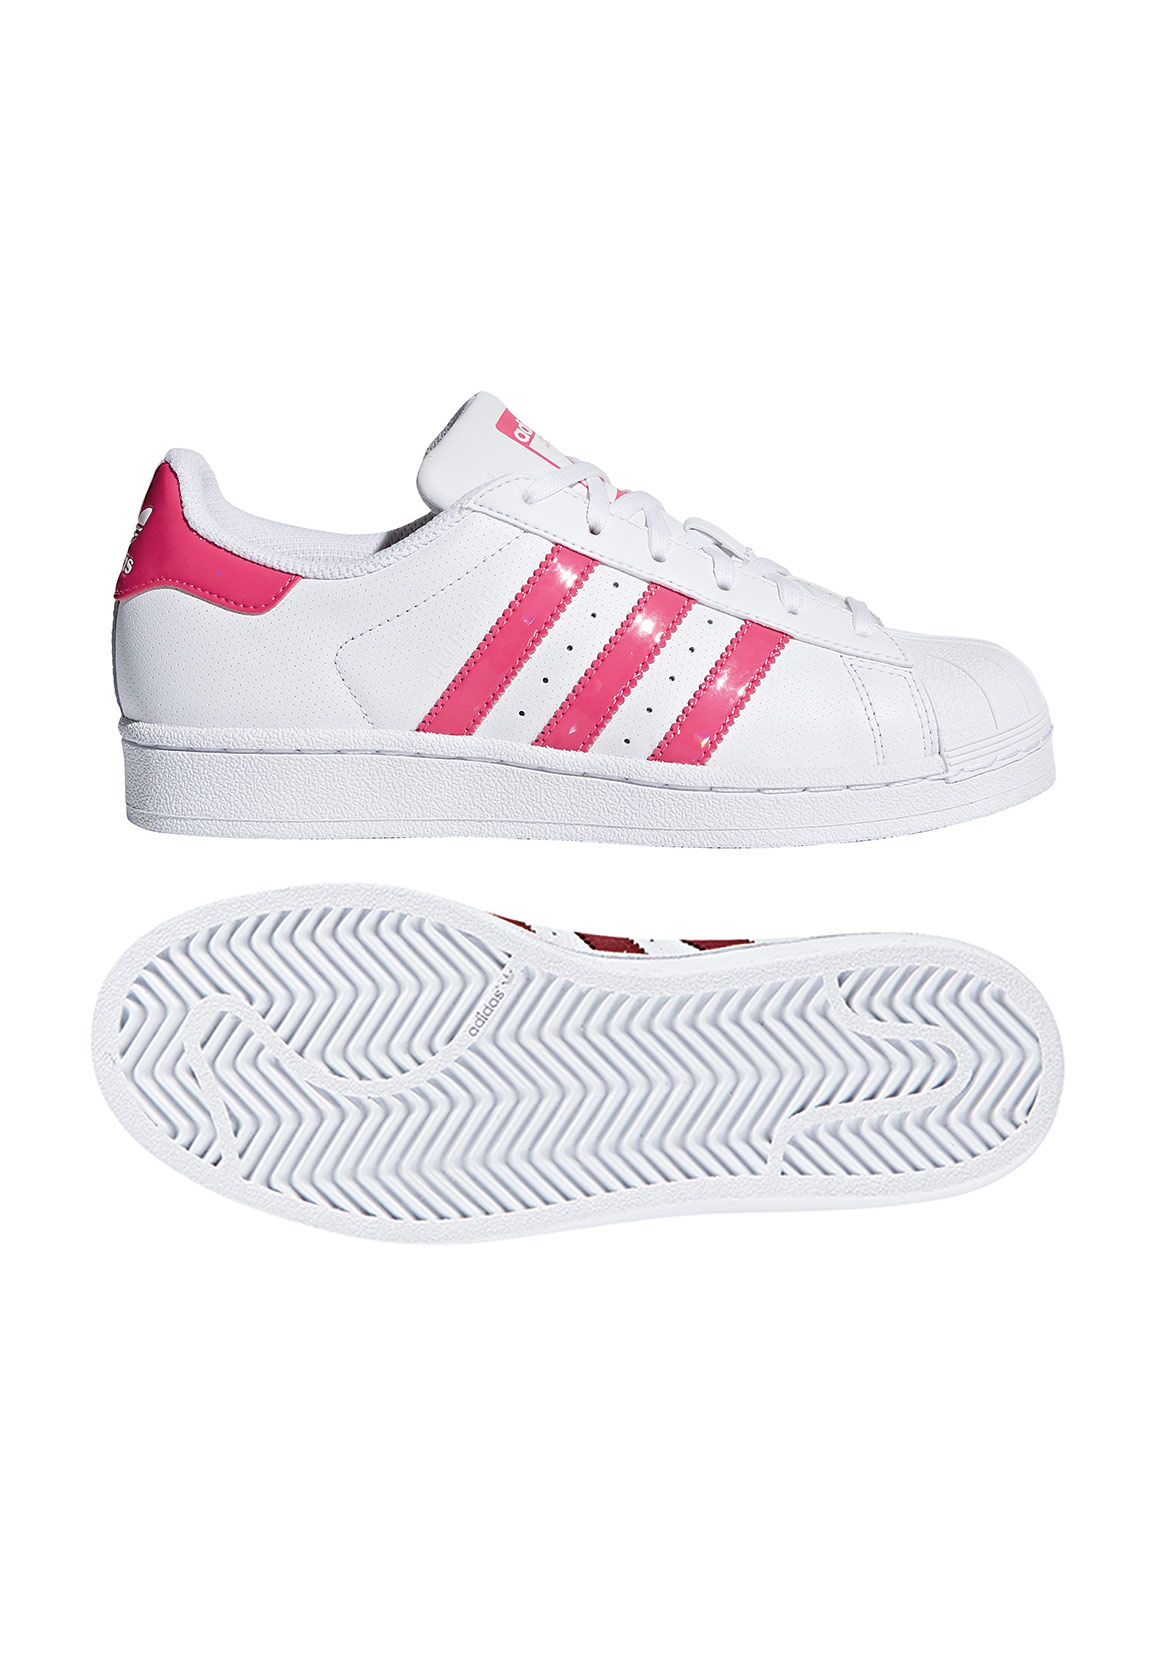 superstars adidas damen pink weiss